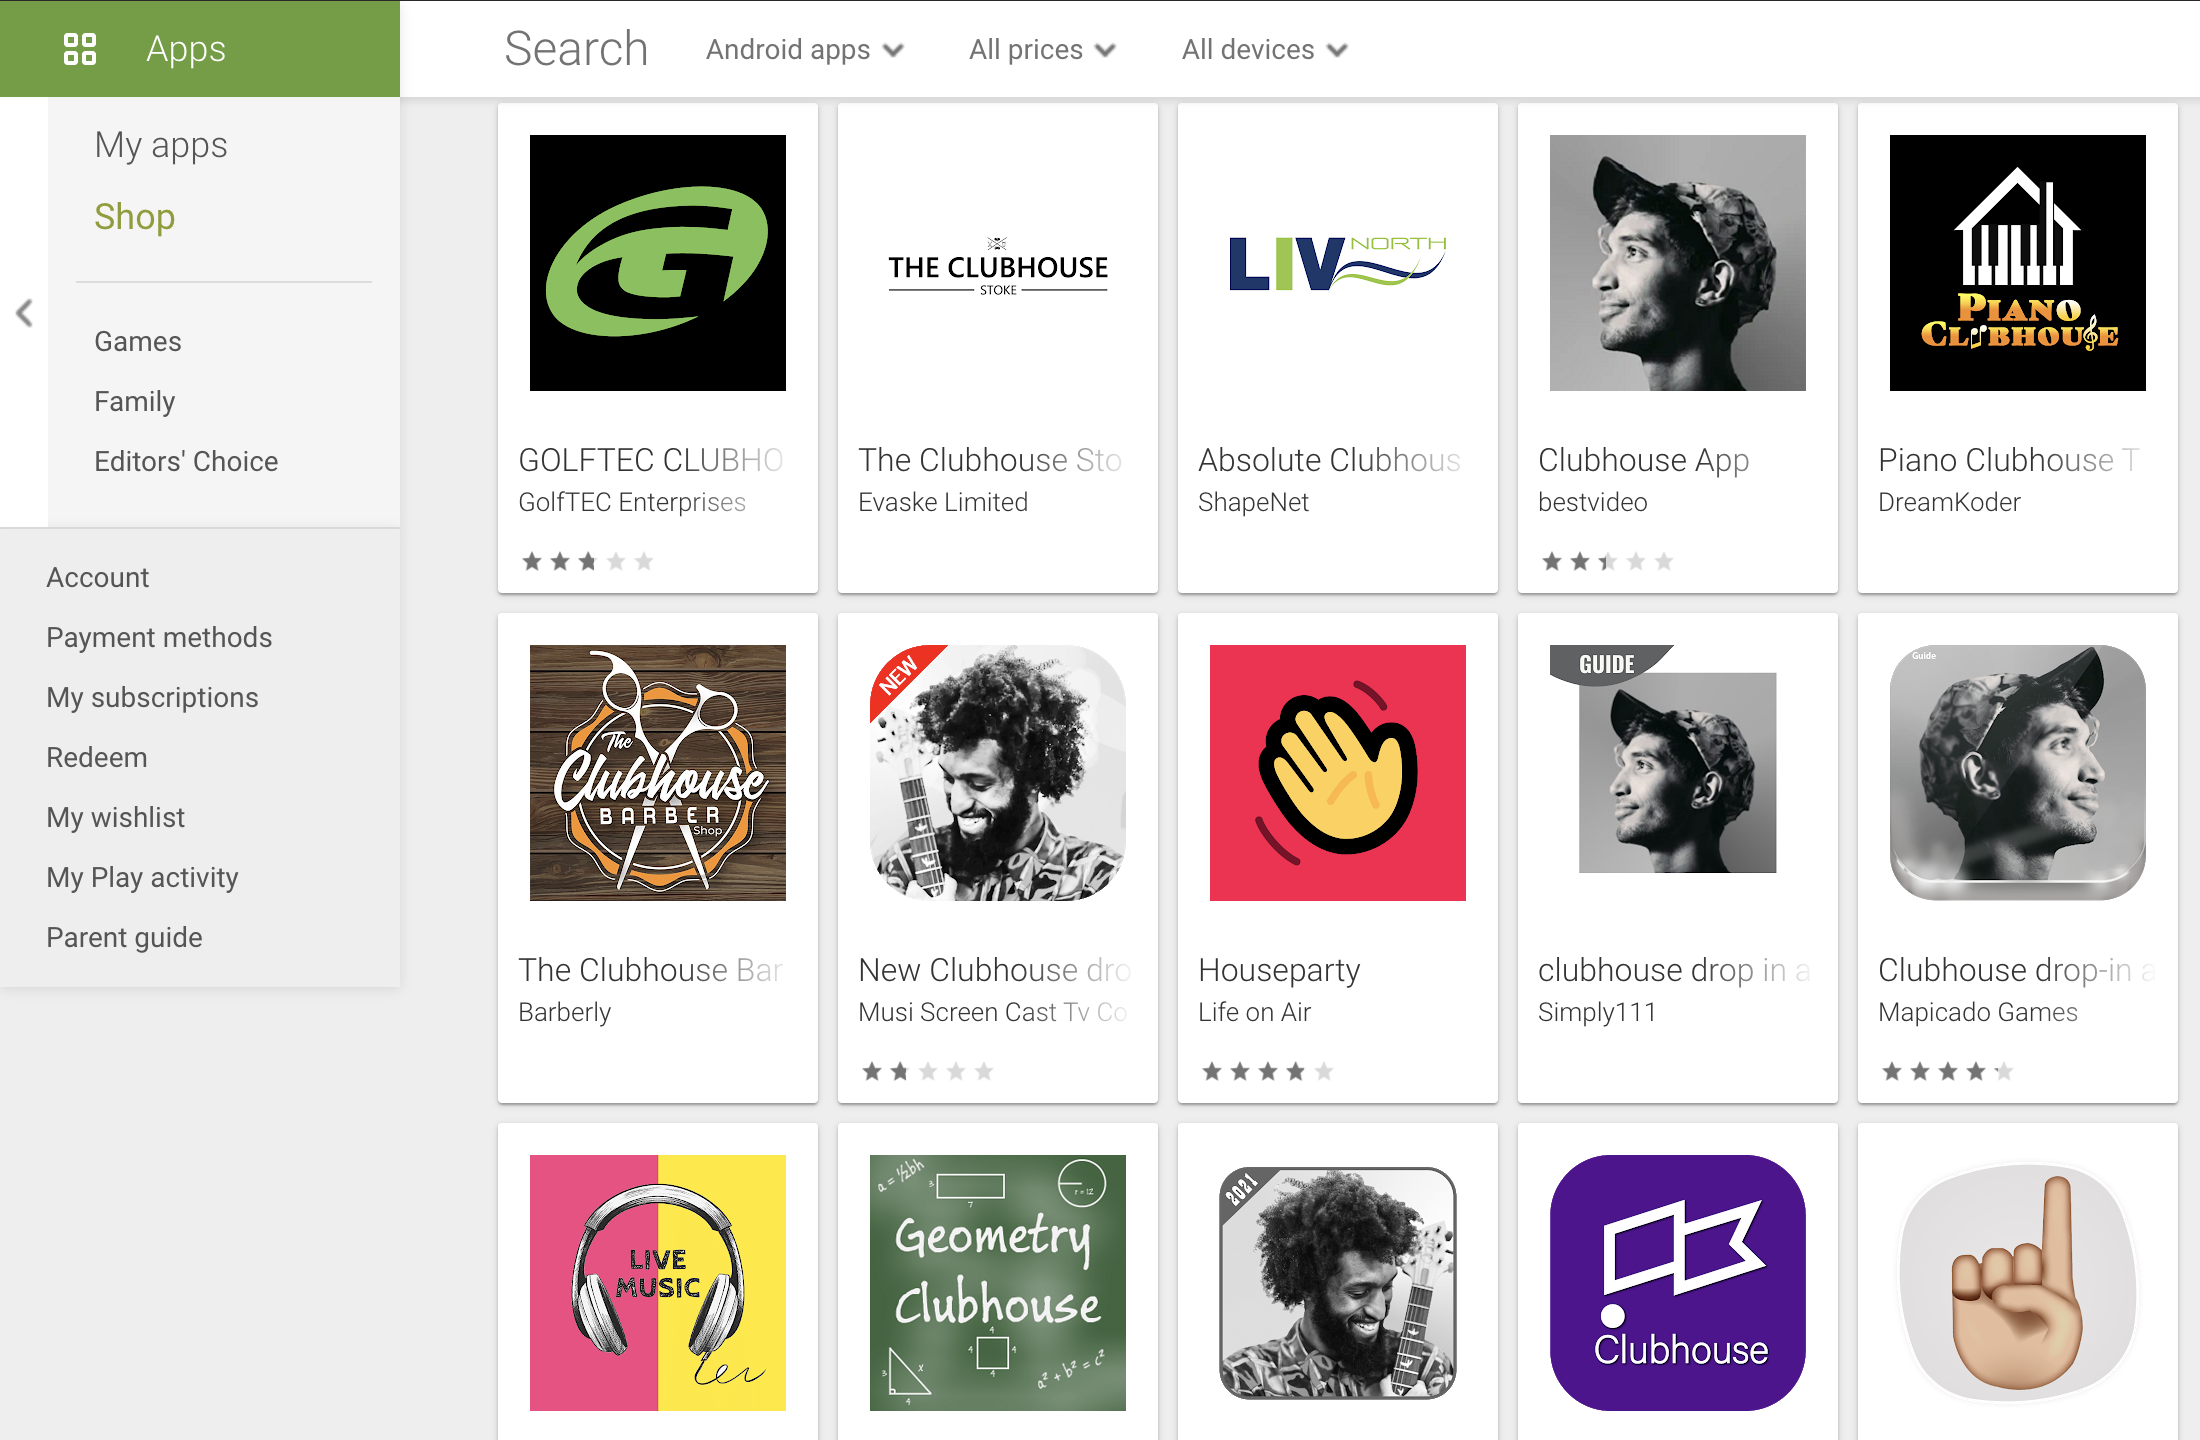 A vast number of fake Clubhouse apps for Android have appeared on Google Play